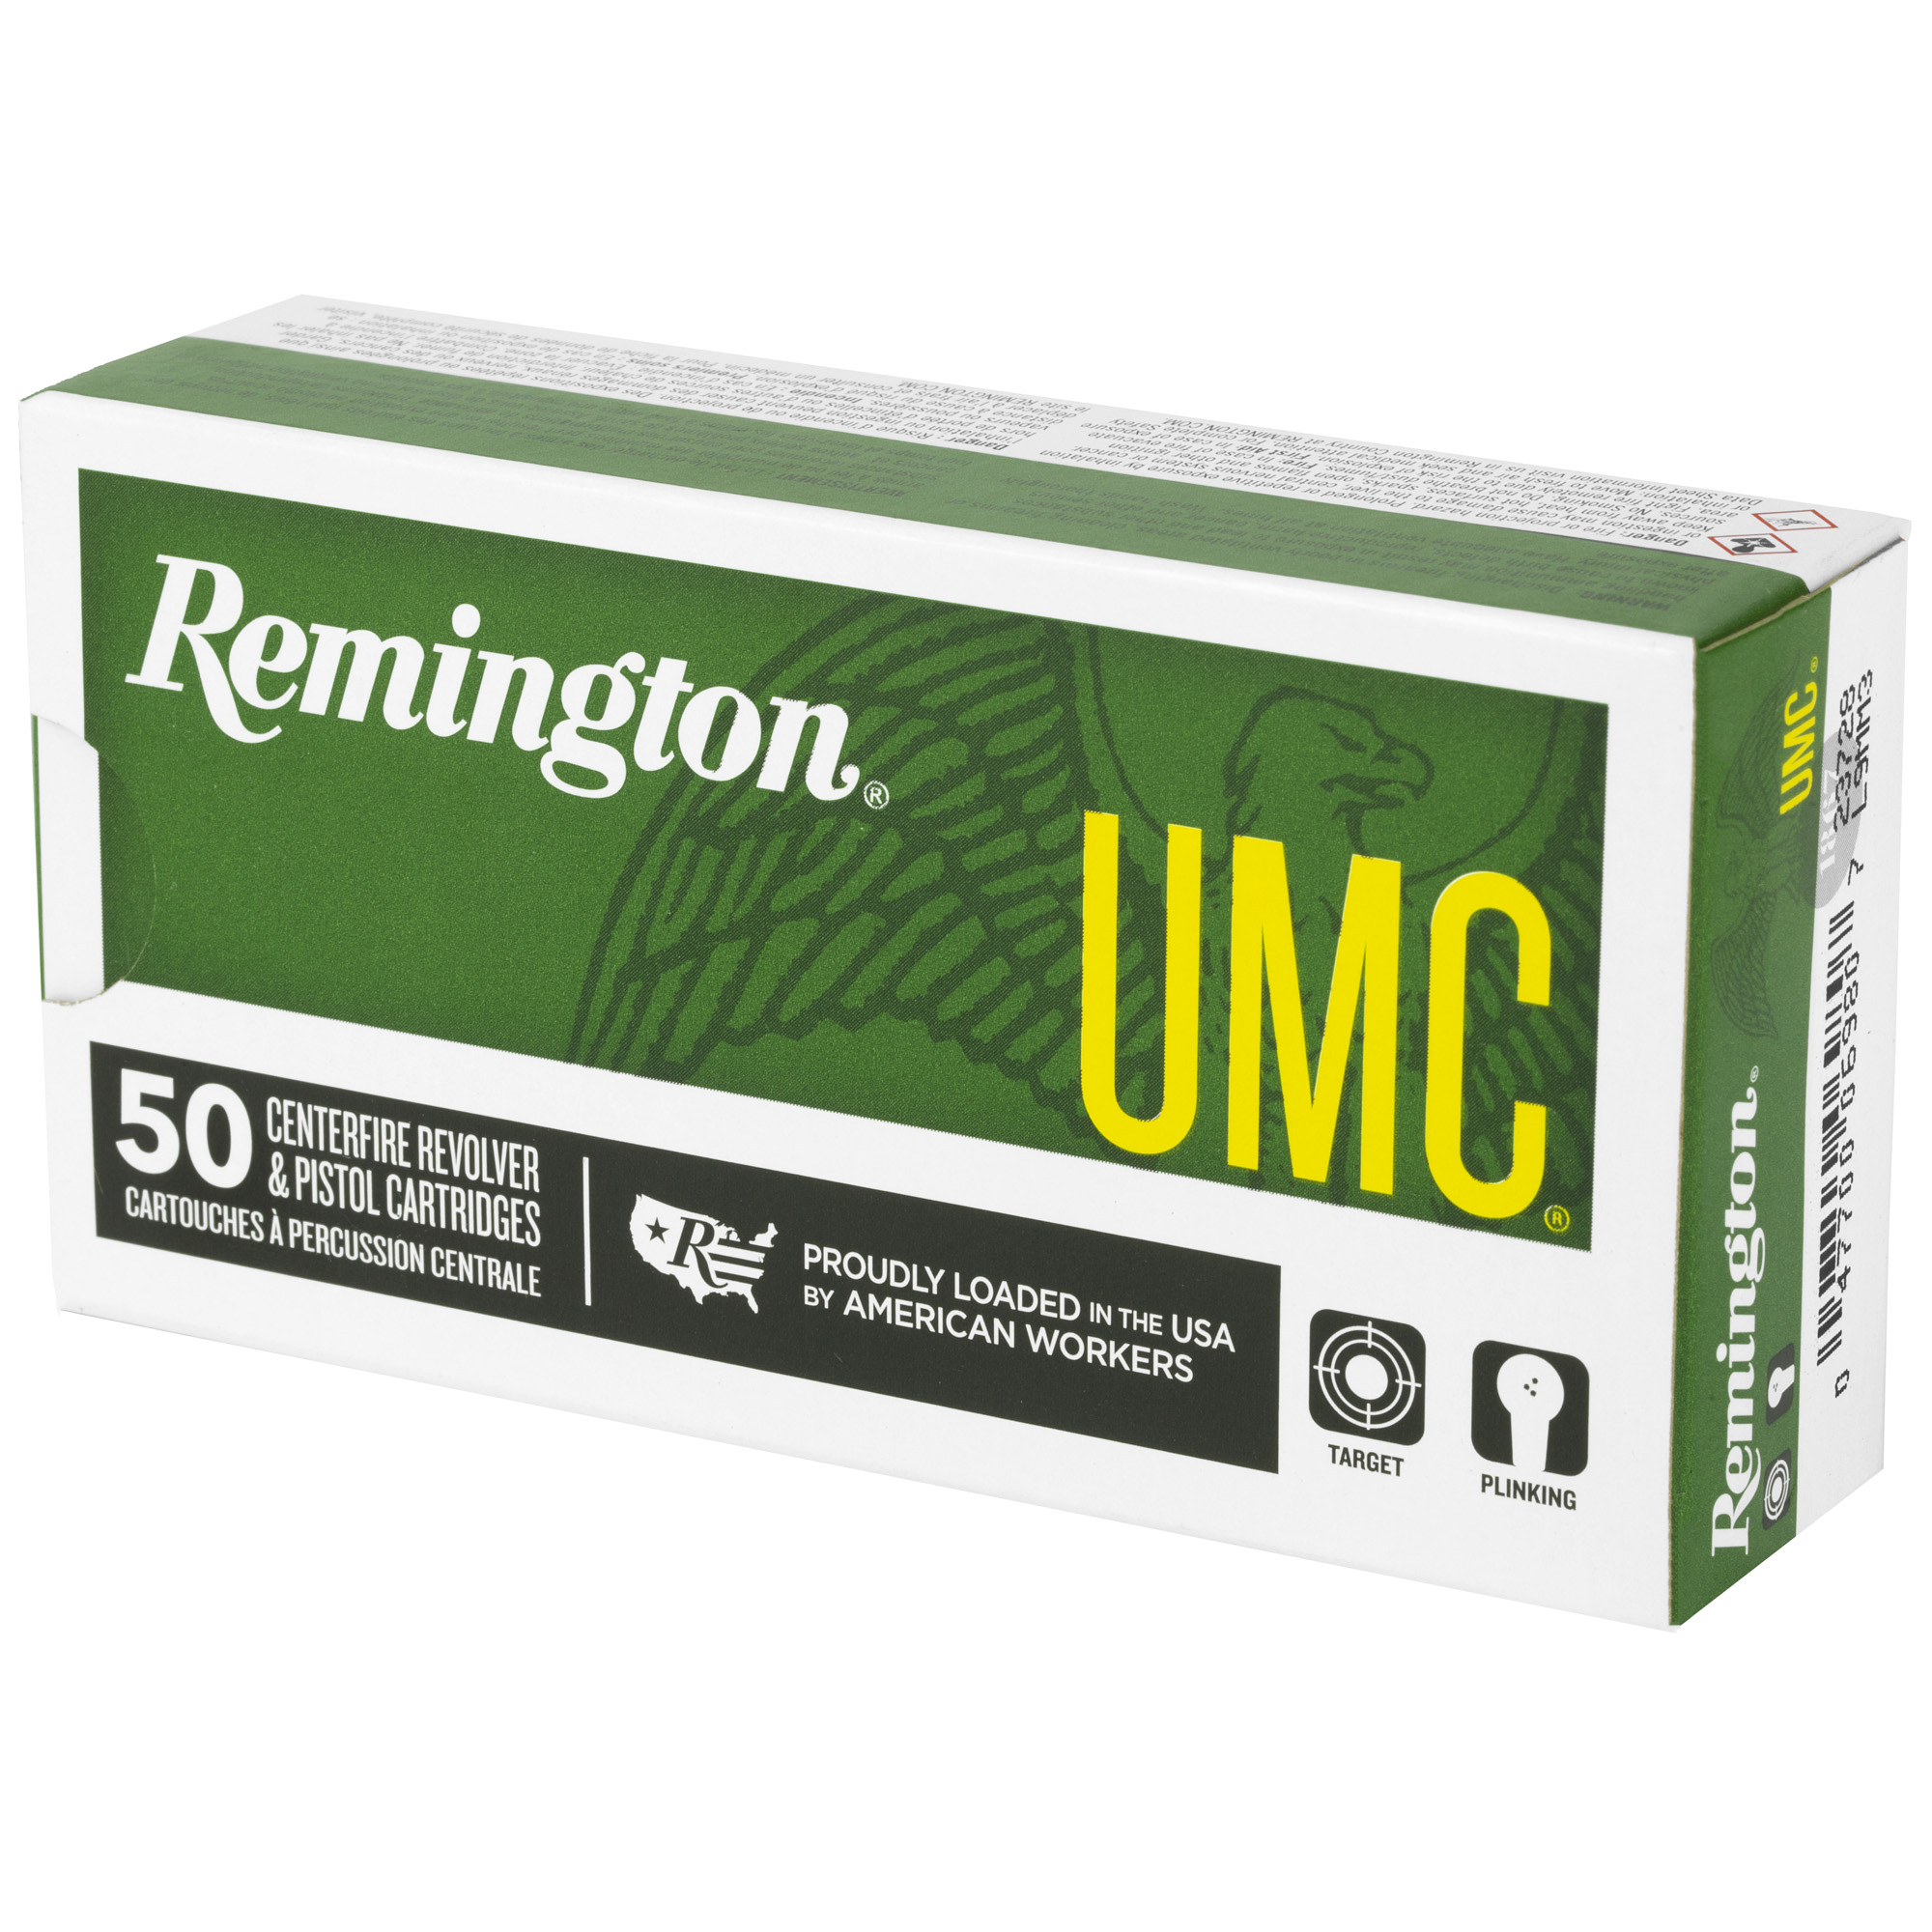 Remington Rem Umc 9mm 115gr Fmj 50/500